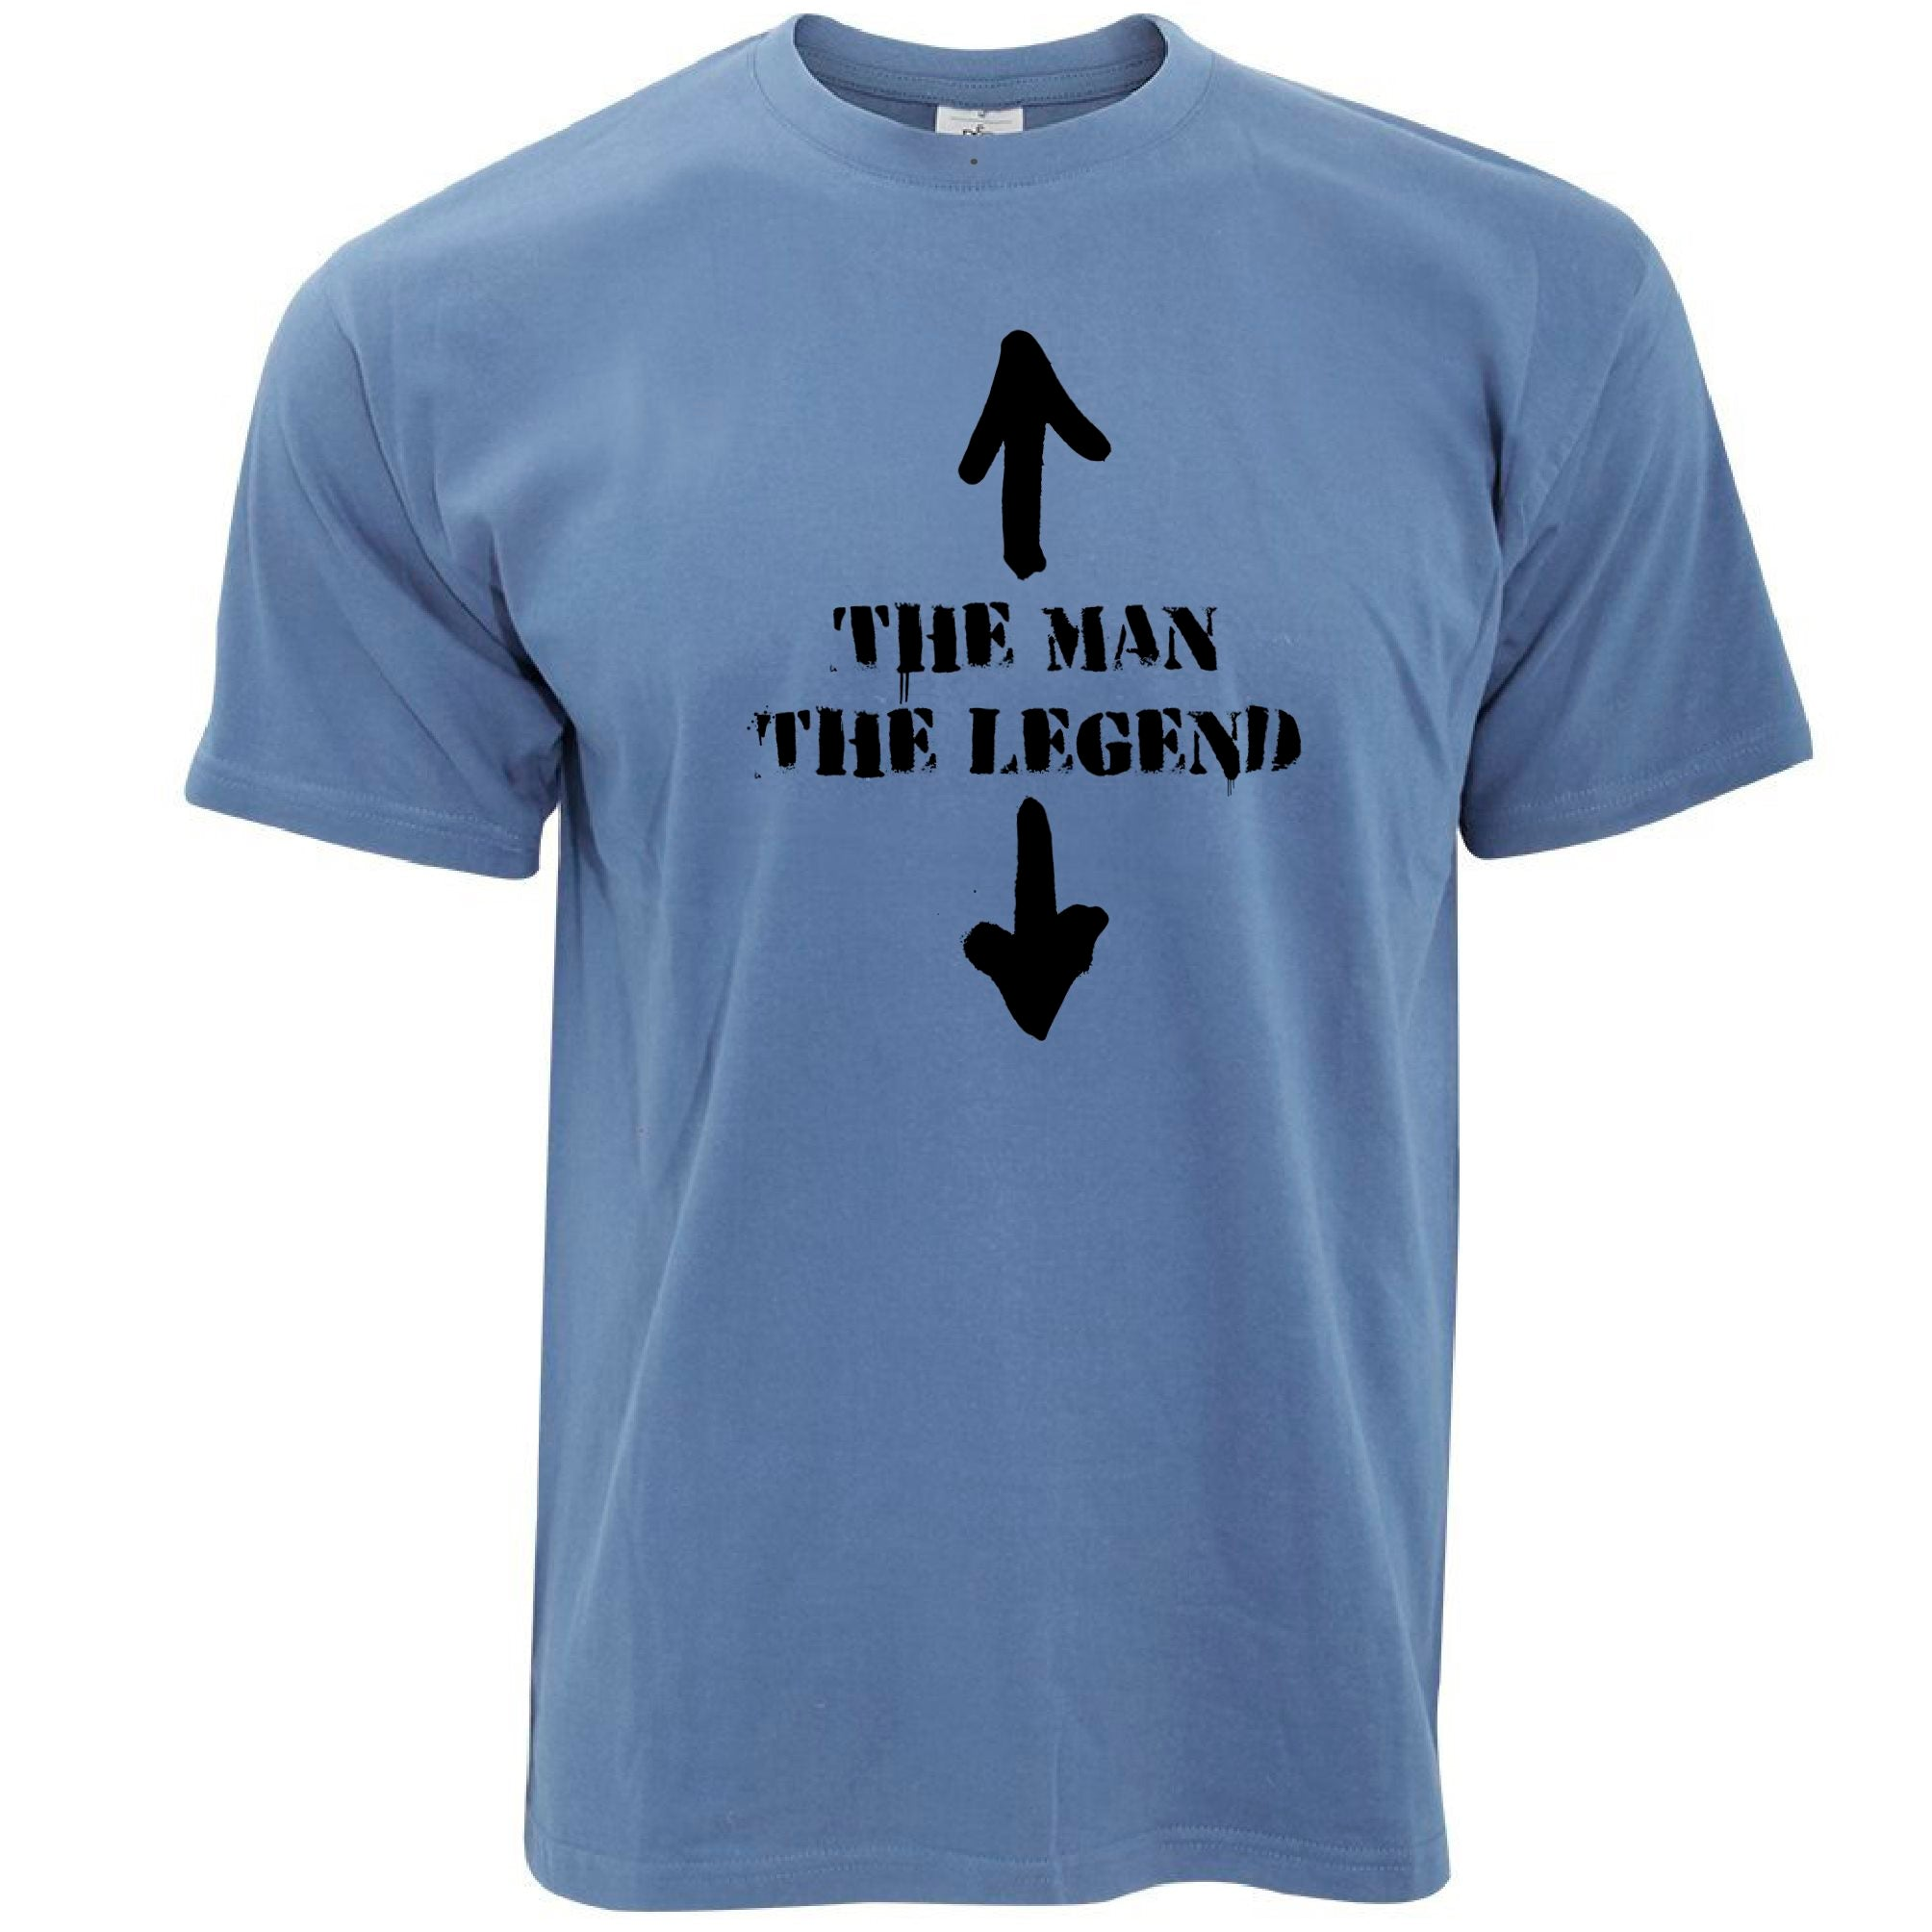 Mens Cool T Shirt The Man, The Legend Novelty Funny Slogan Tee